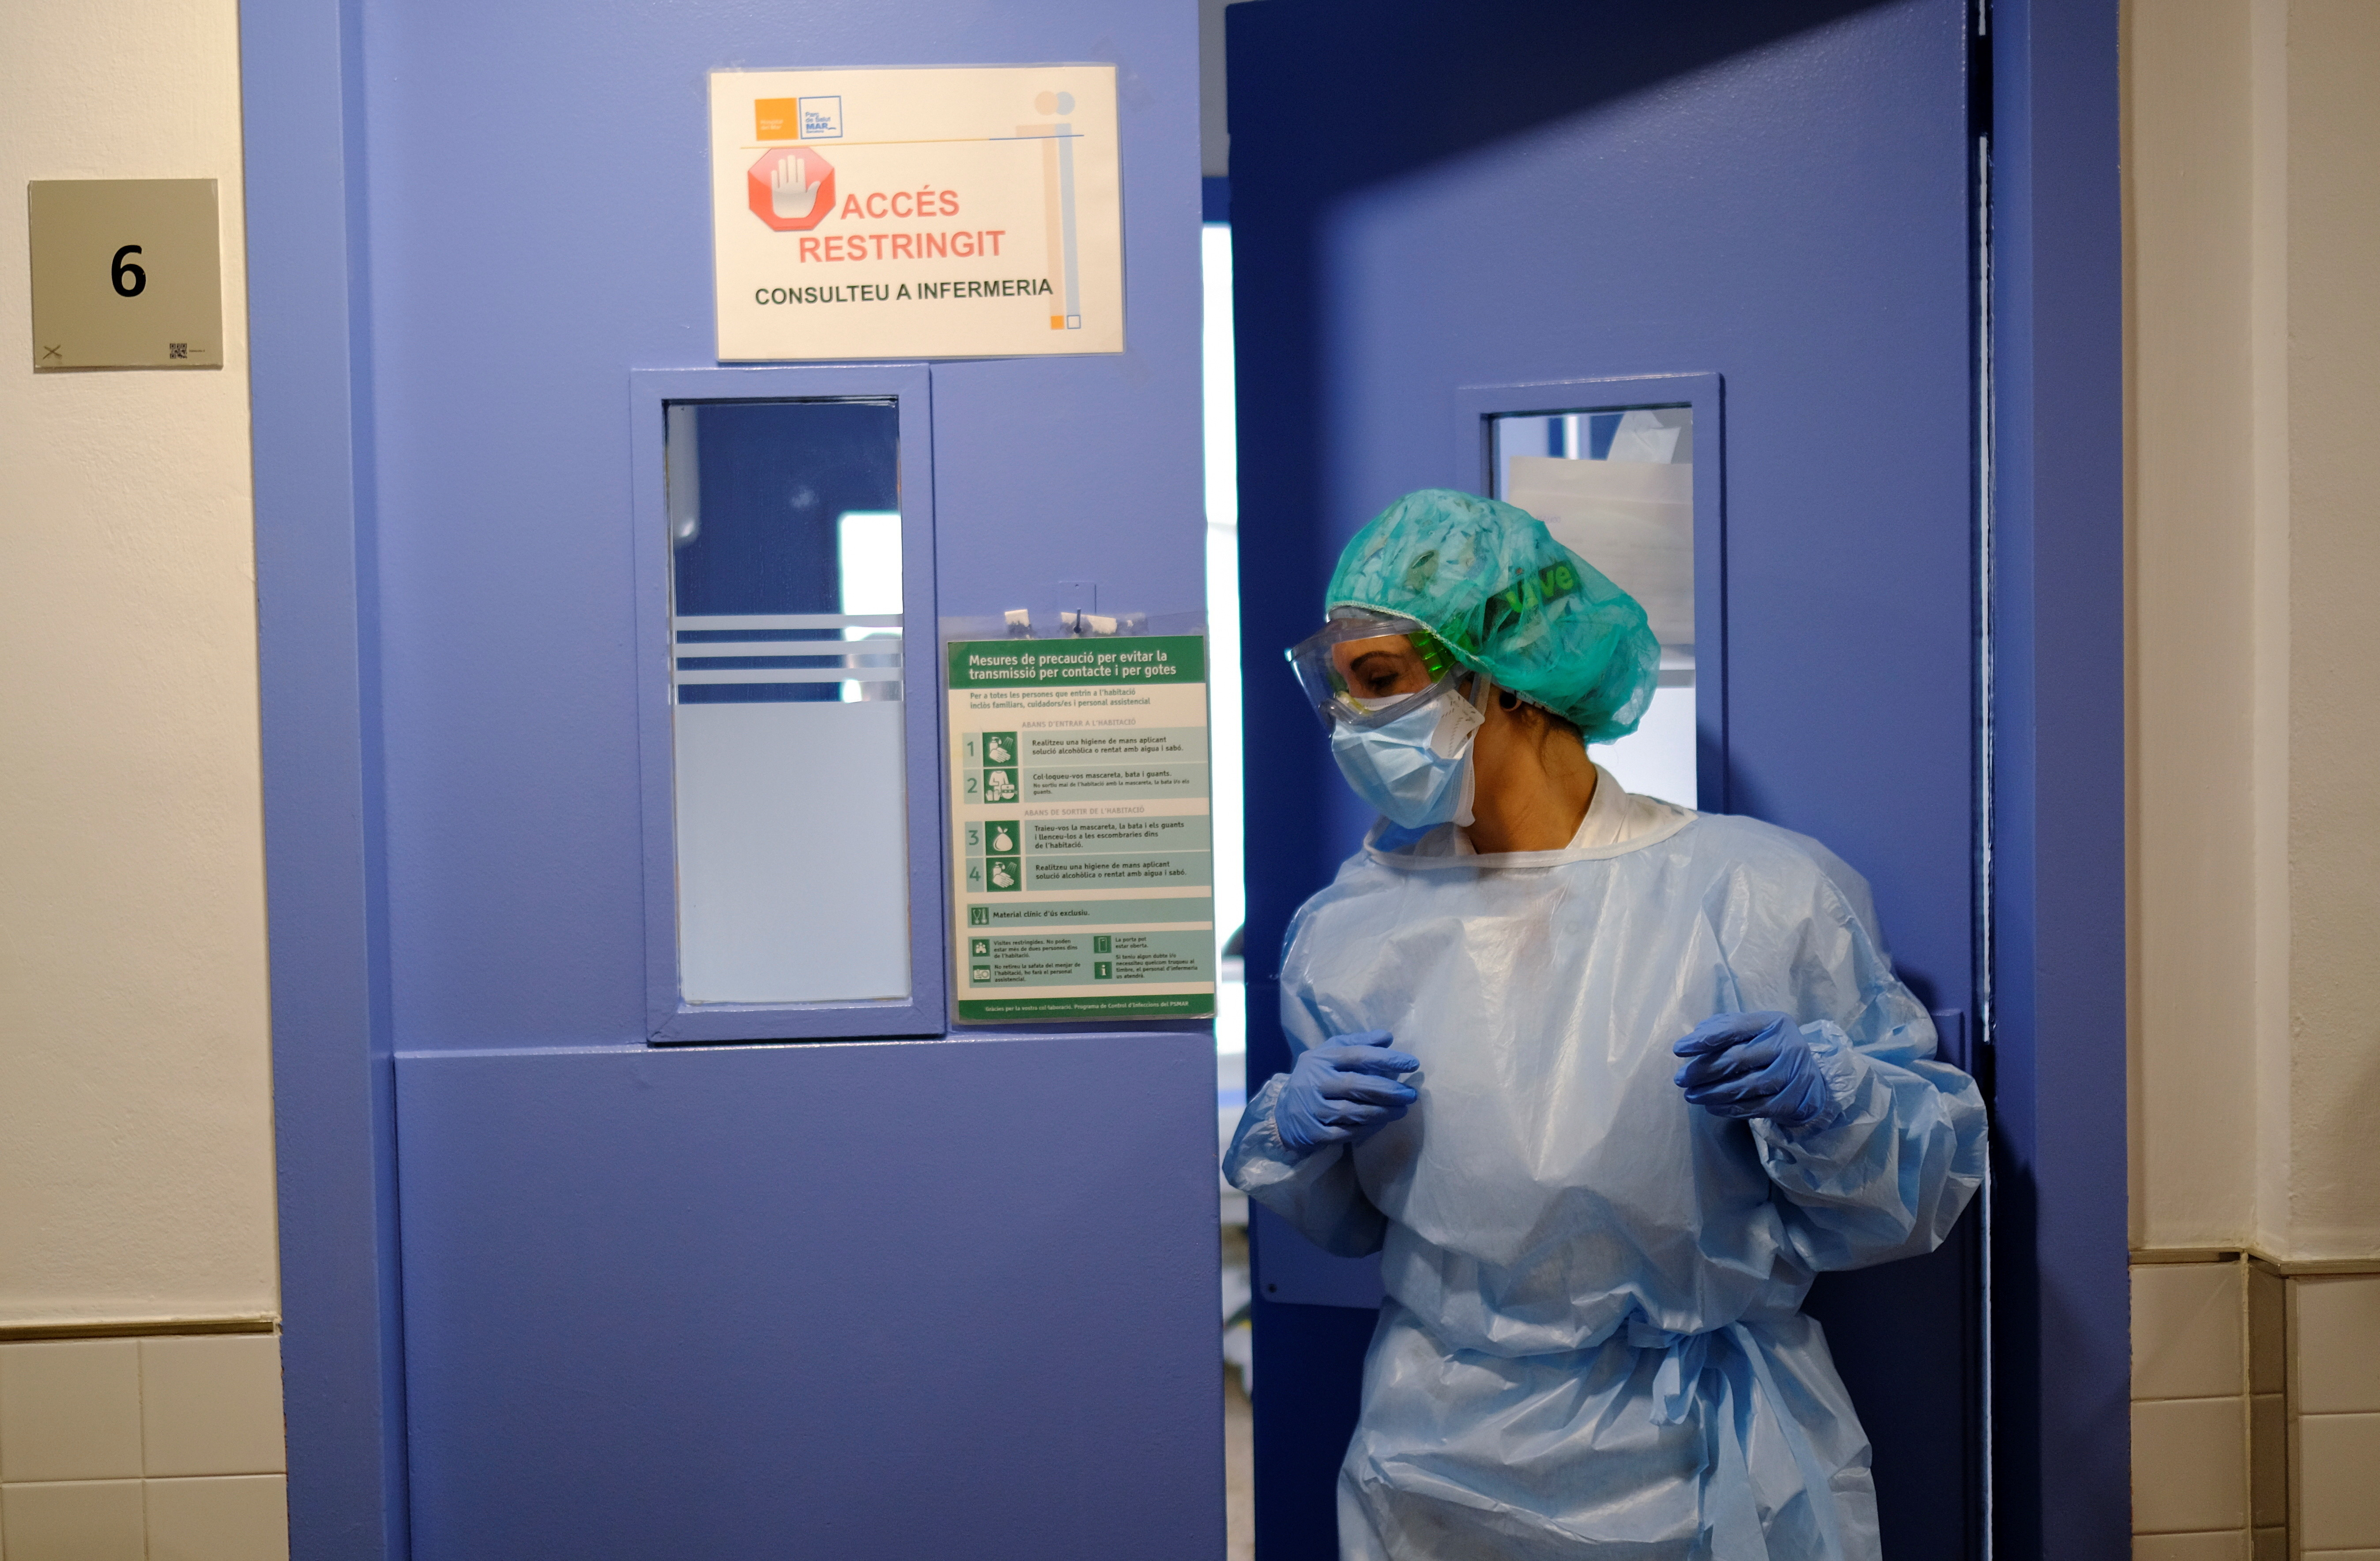 A hospital staff prepares to treat a patient suffering from coronavirus disease (COVID-19), after Catalonia's government imposed new restrictions in an effort to control a new outbreak of the coronavirus disease (COVID-19) in Barcelona, Spain, October 20, 2020. REUTERS/Nacho Doce - RC2HMJ9672V5